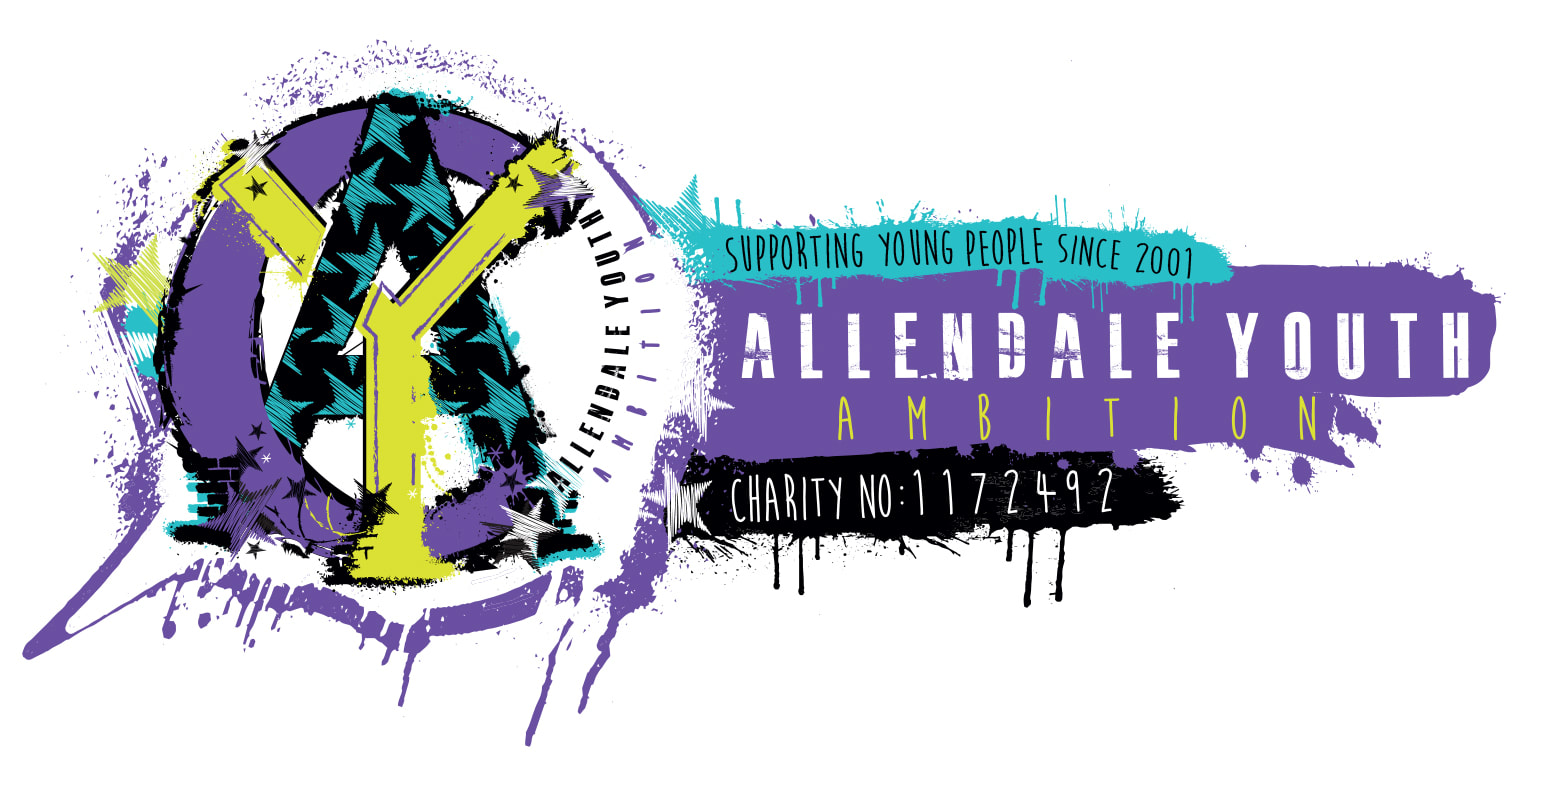 Allendale Youth Ambition Logo